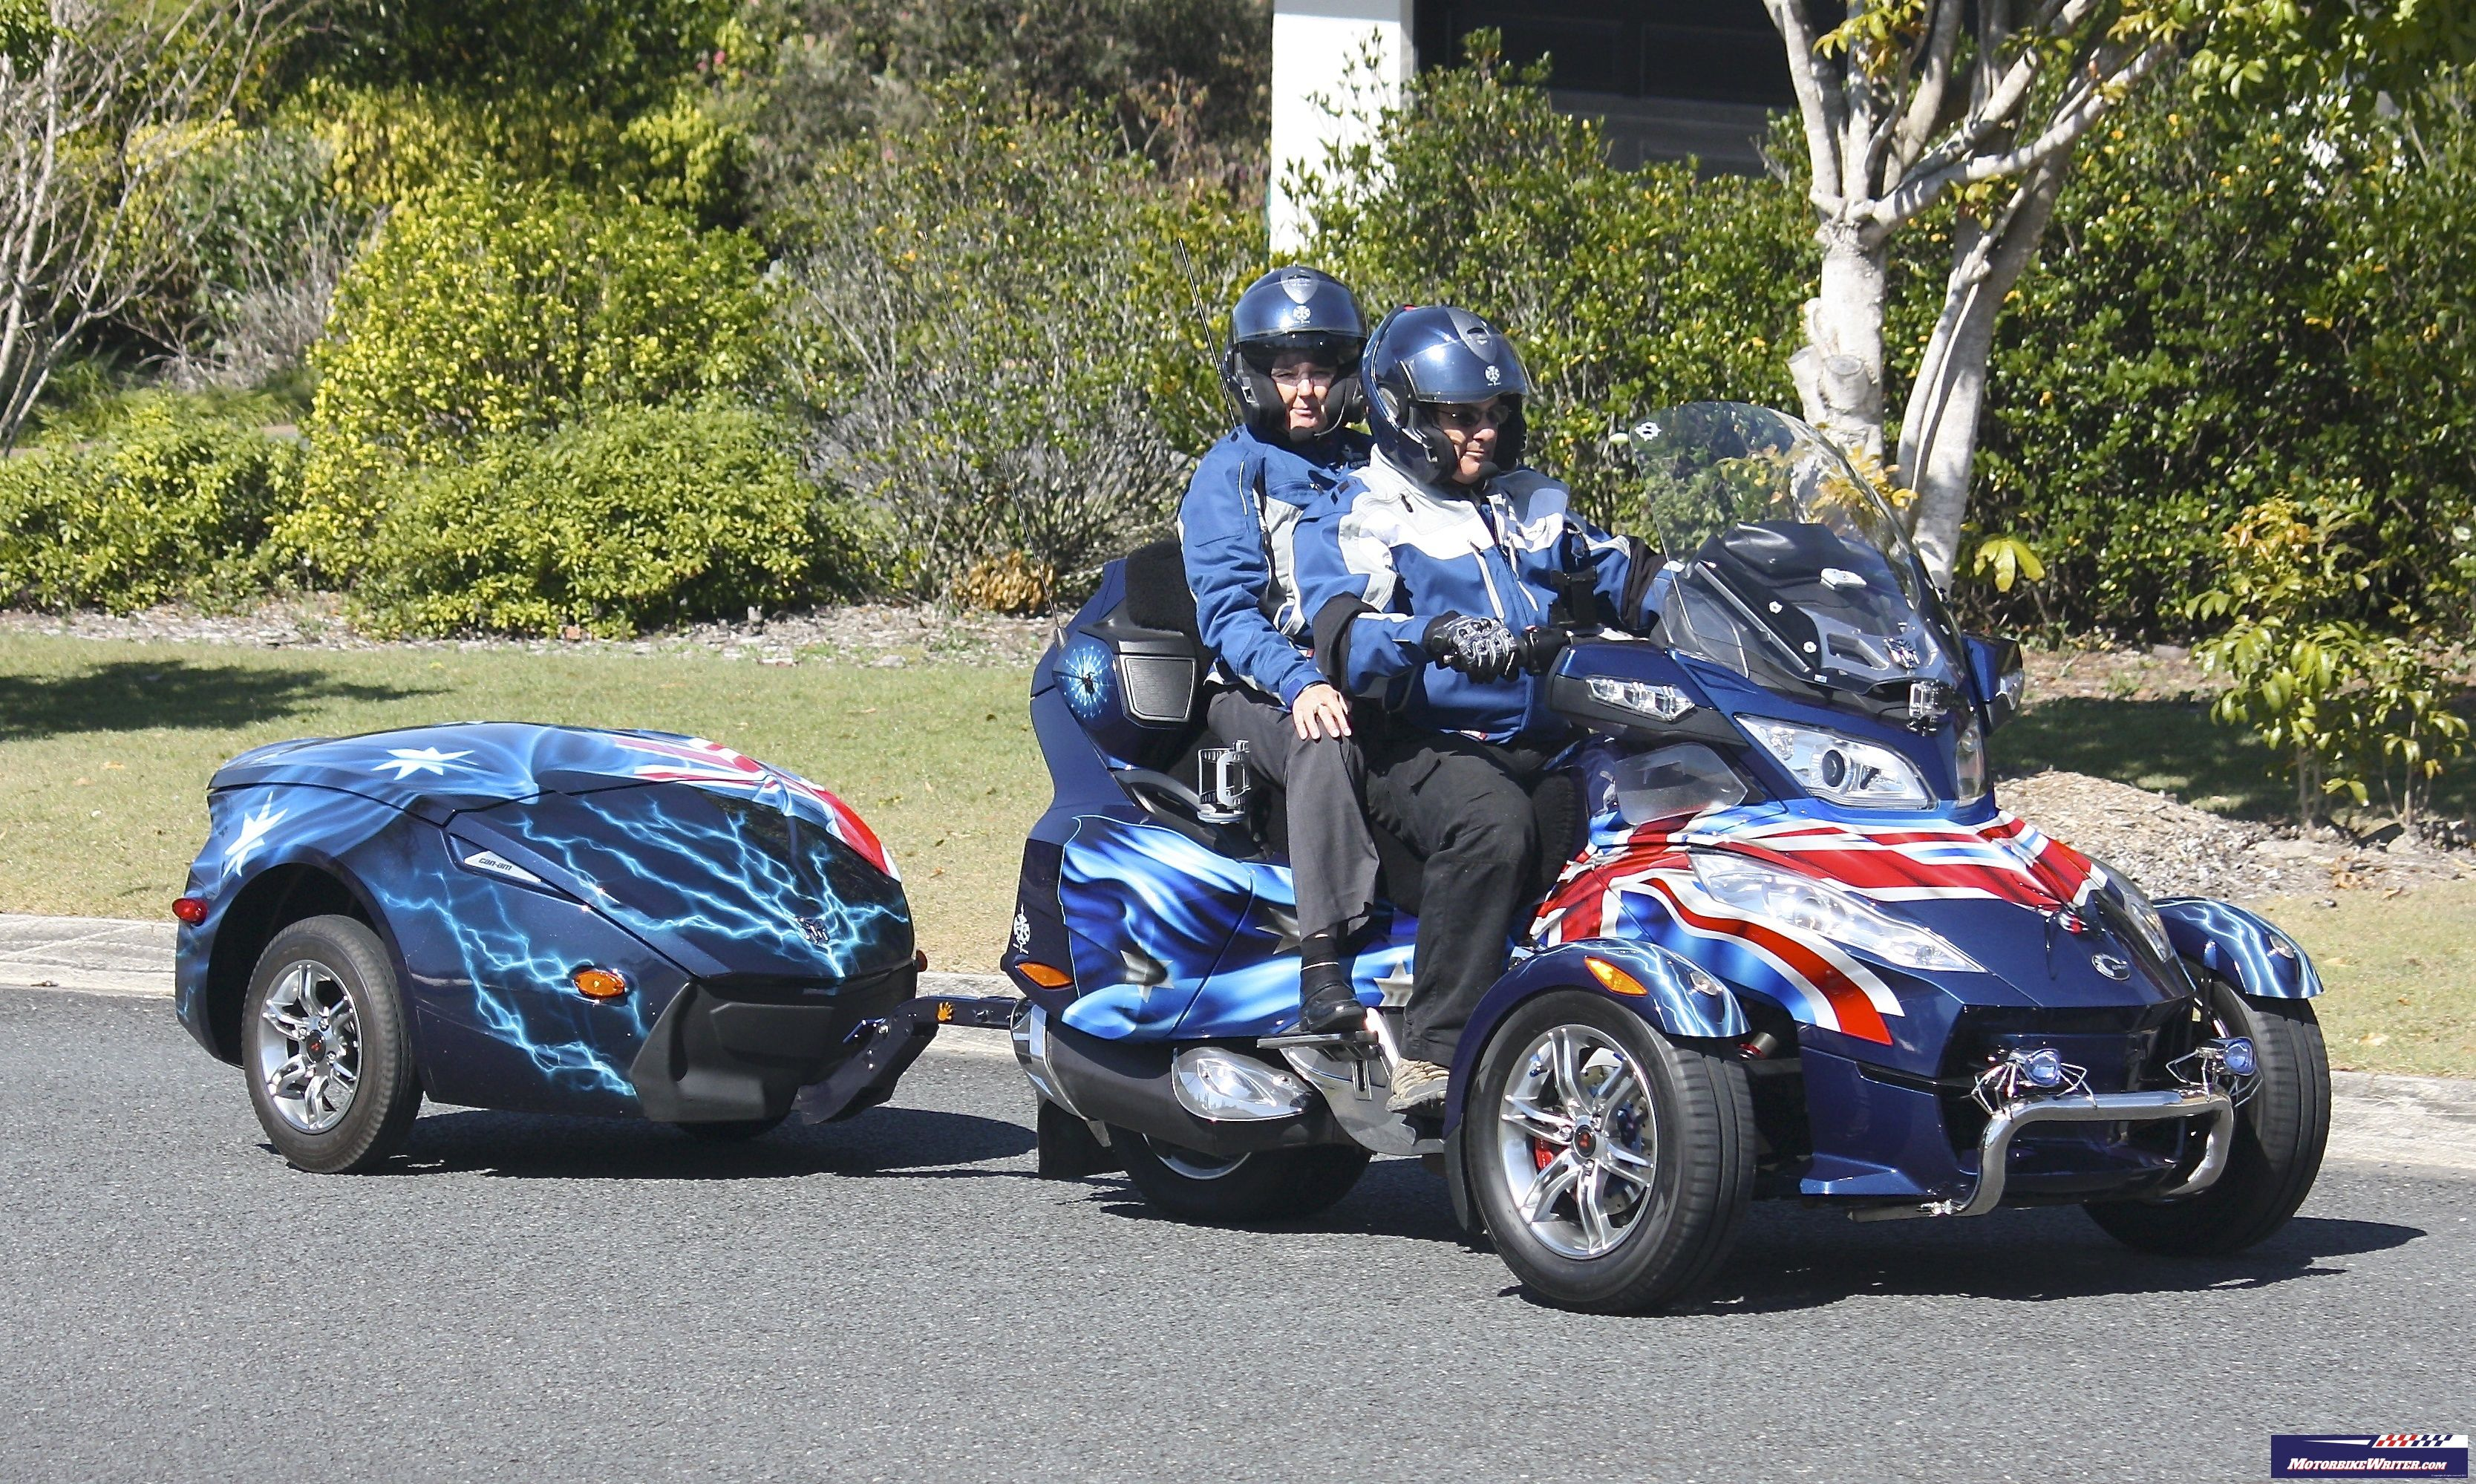 John and rose england s patriotic can am spyder and trailer http motorbikewriter